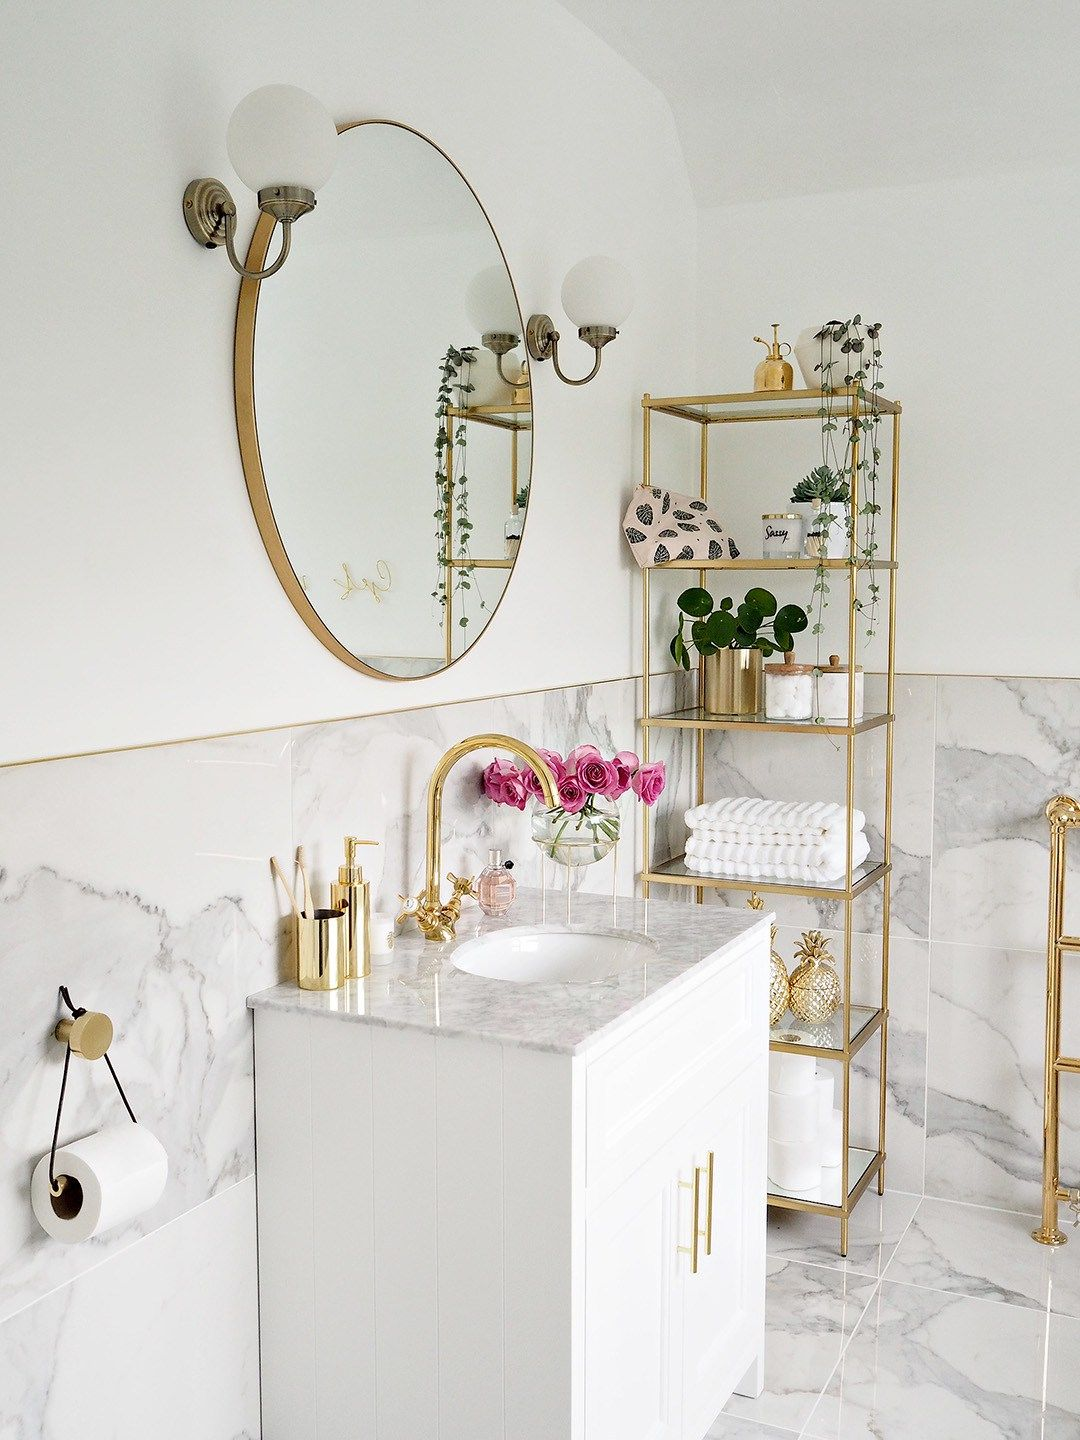 Marble & Gold Bathroom Reveal (Lust Living) | Interiors and Castles ...